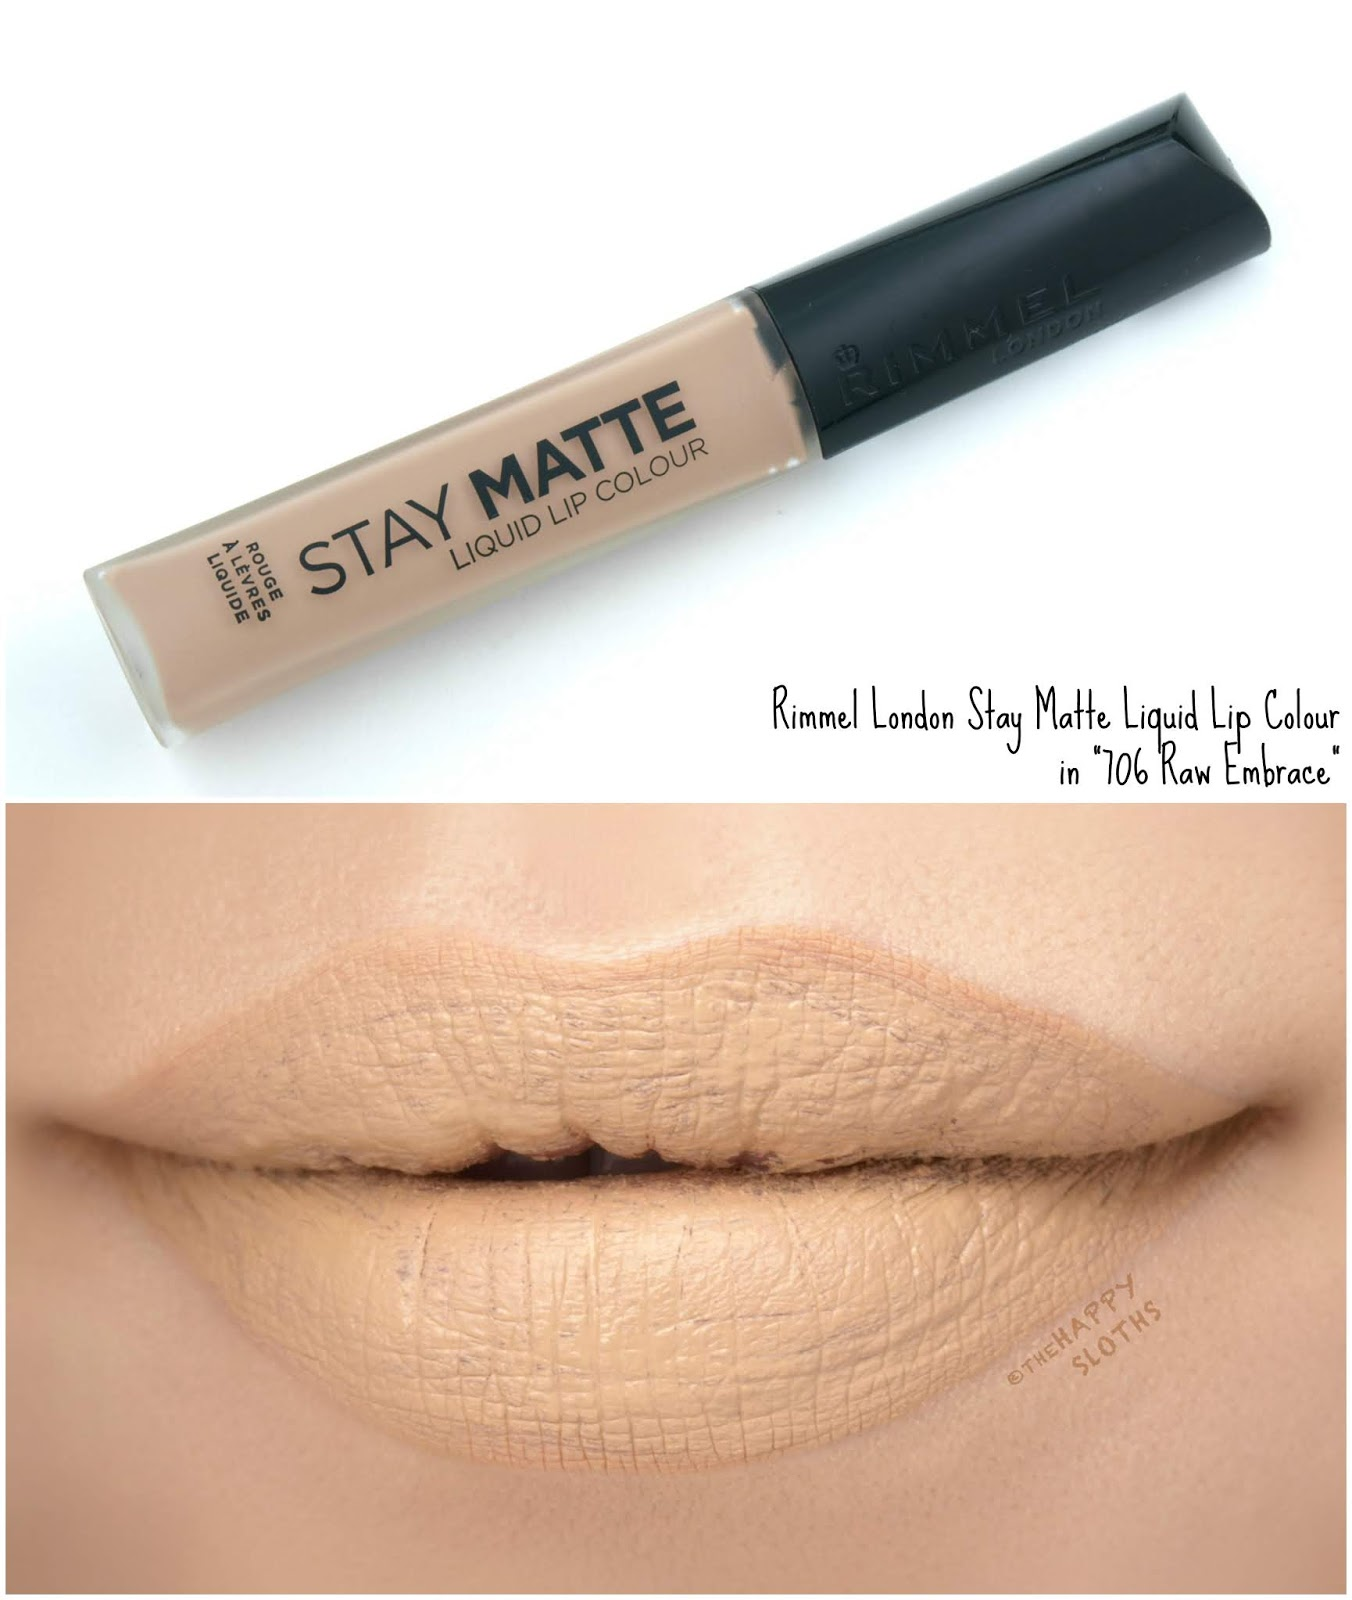 "Rimmel London | Stay Matte Liquid Lip Colour in ""706 Raw Embrace"": Review and Swatches"